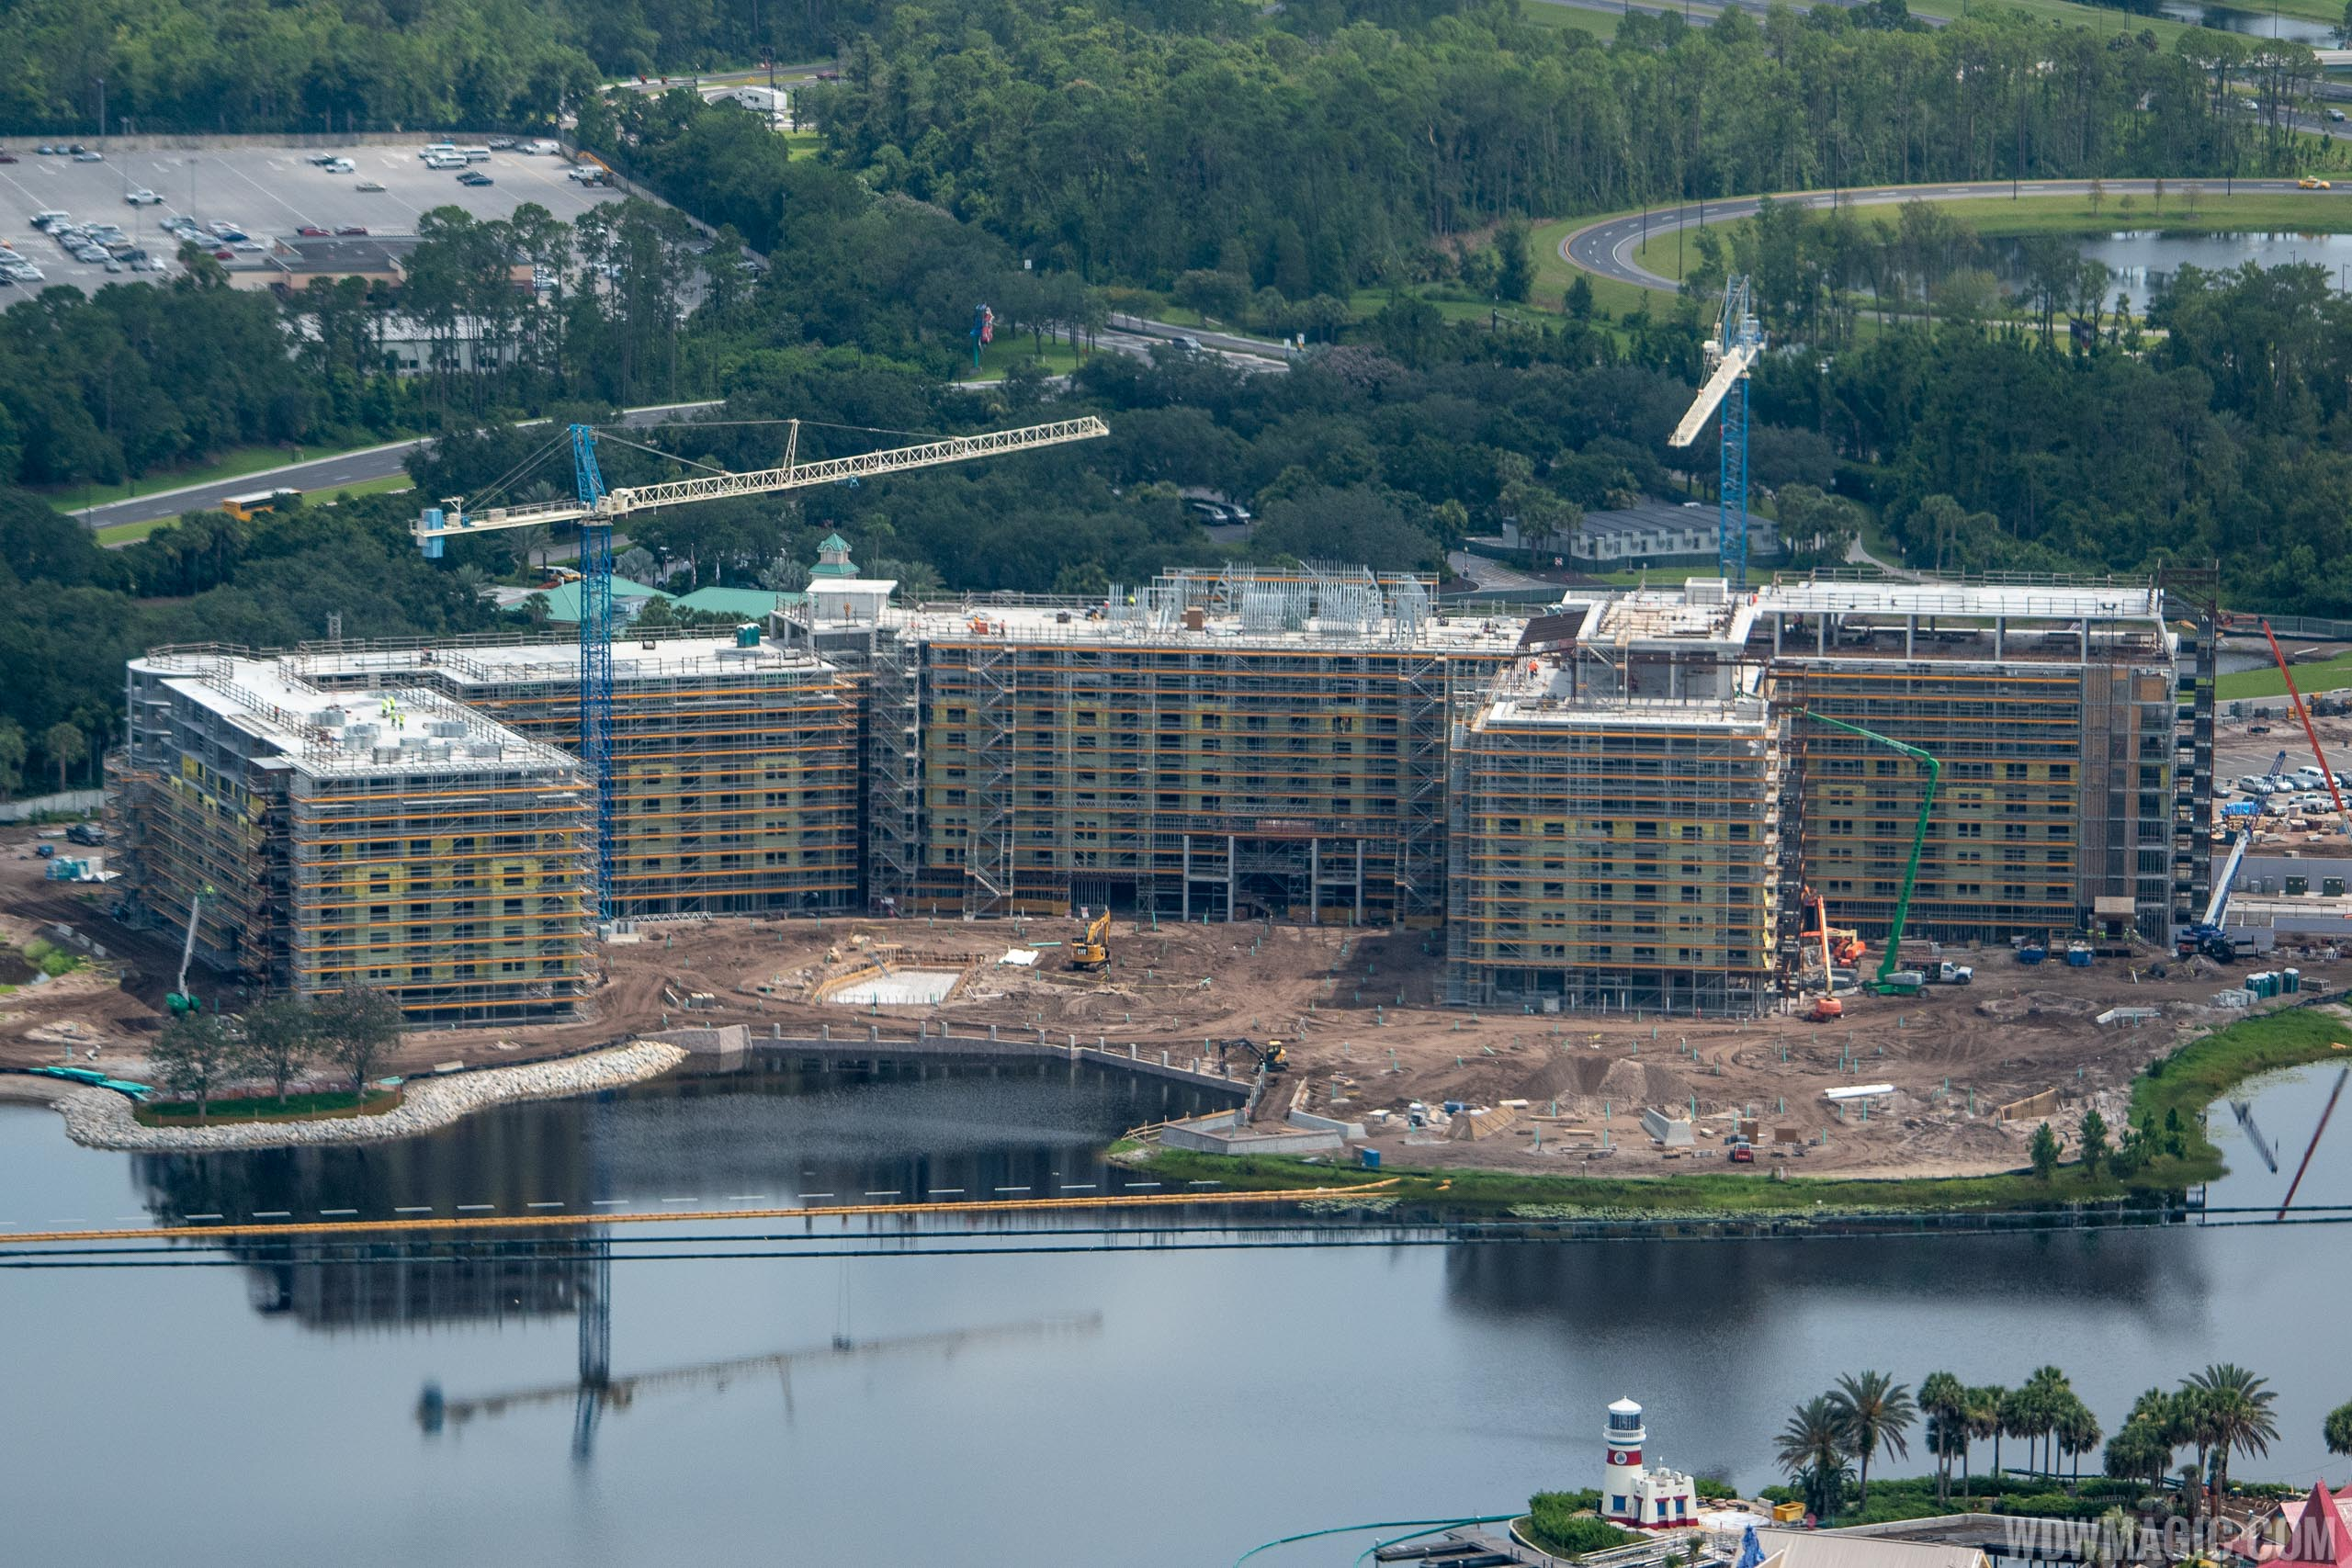 Disney Riviera construction from the air - July 2018